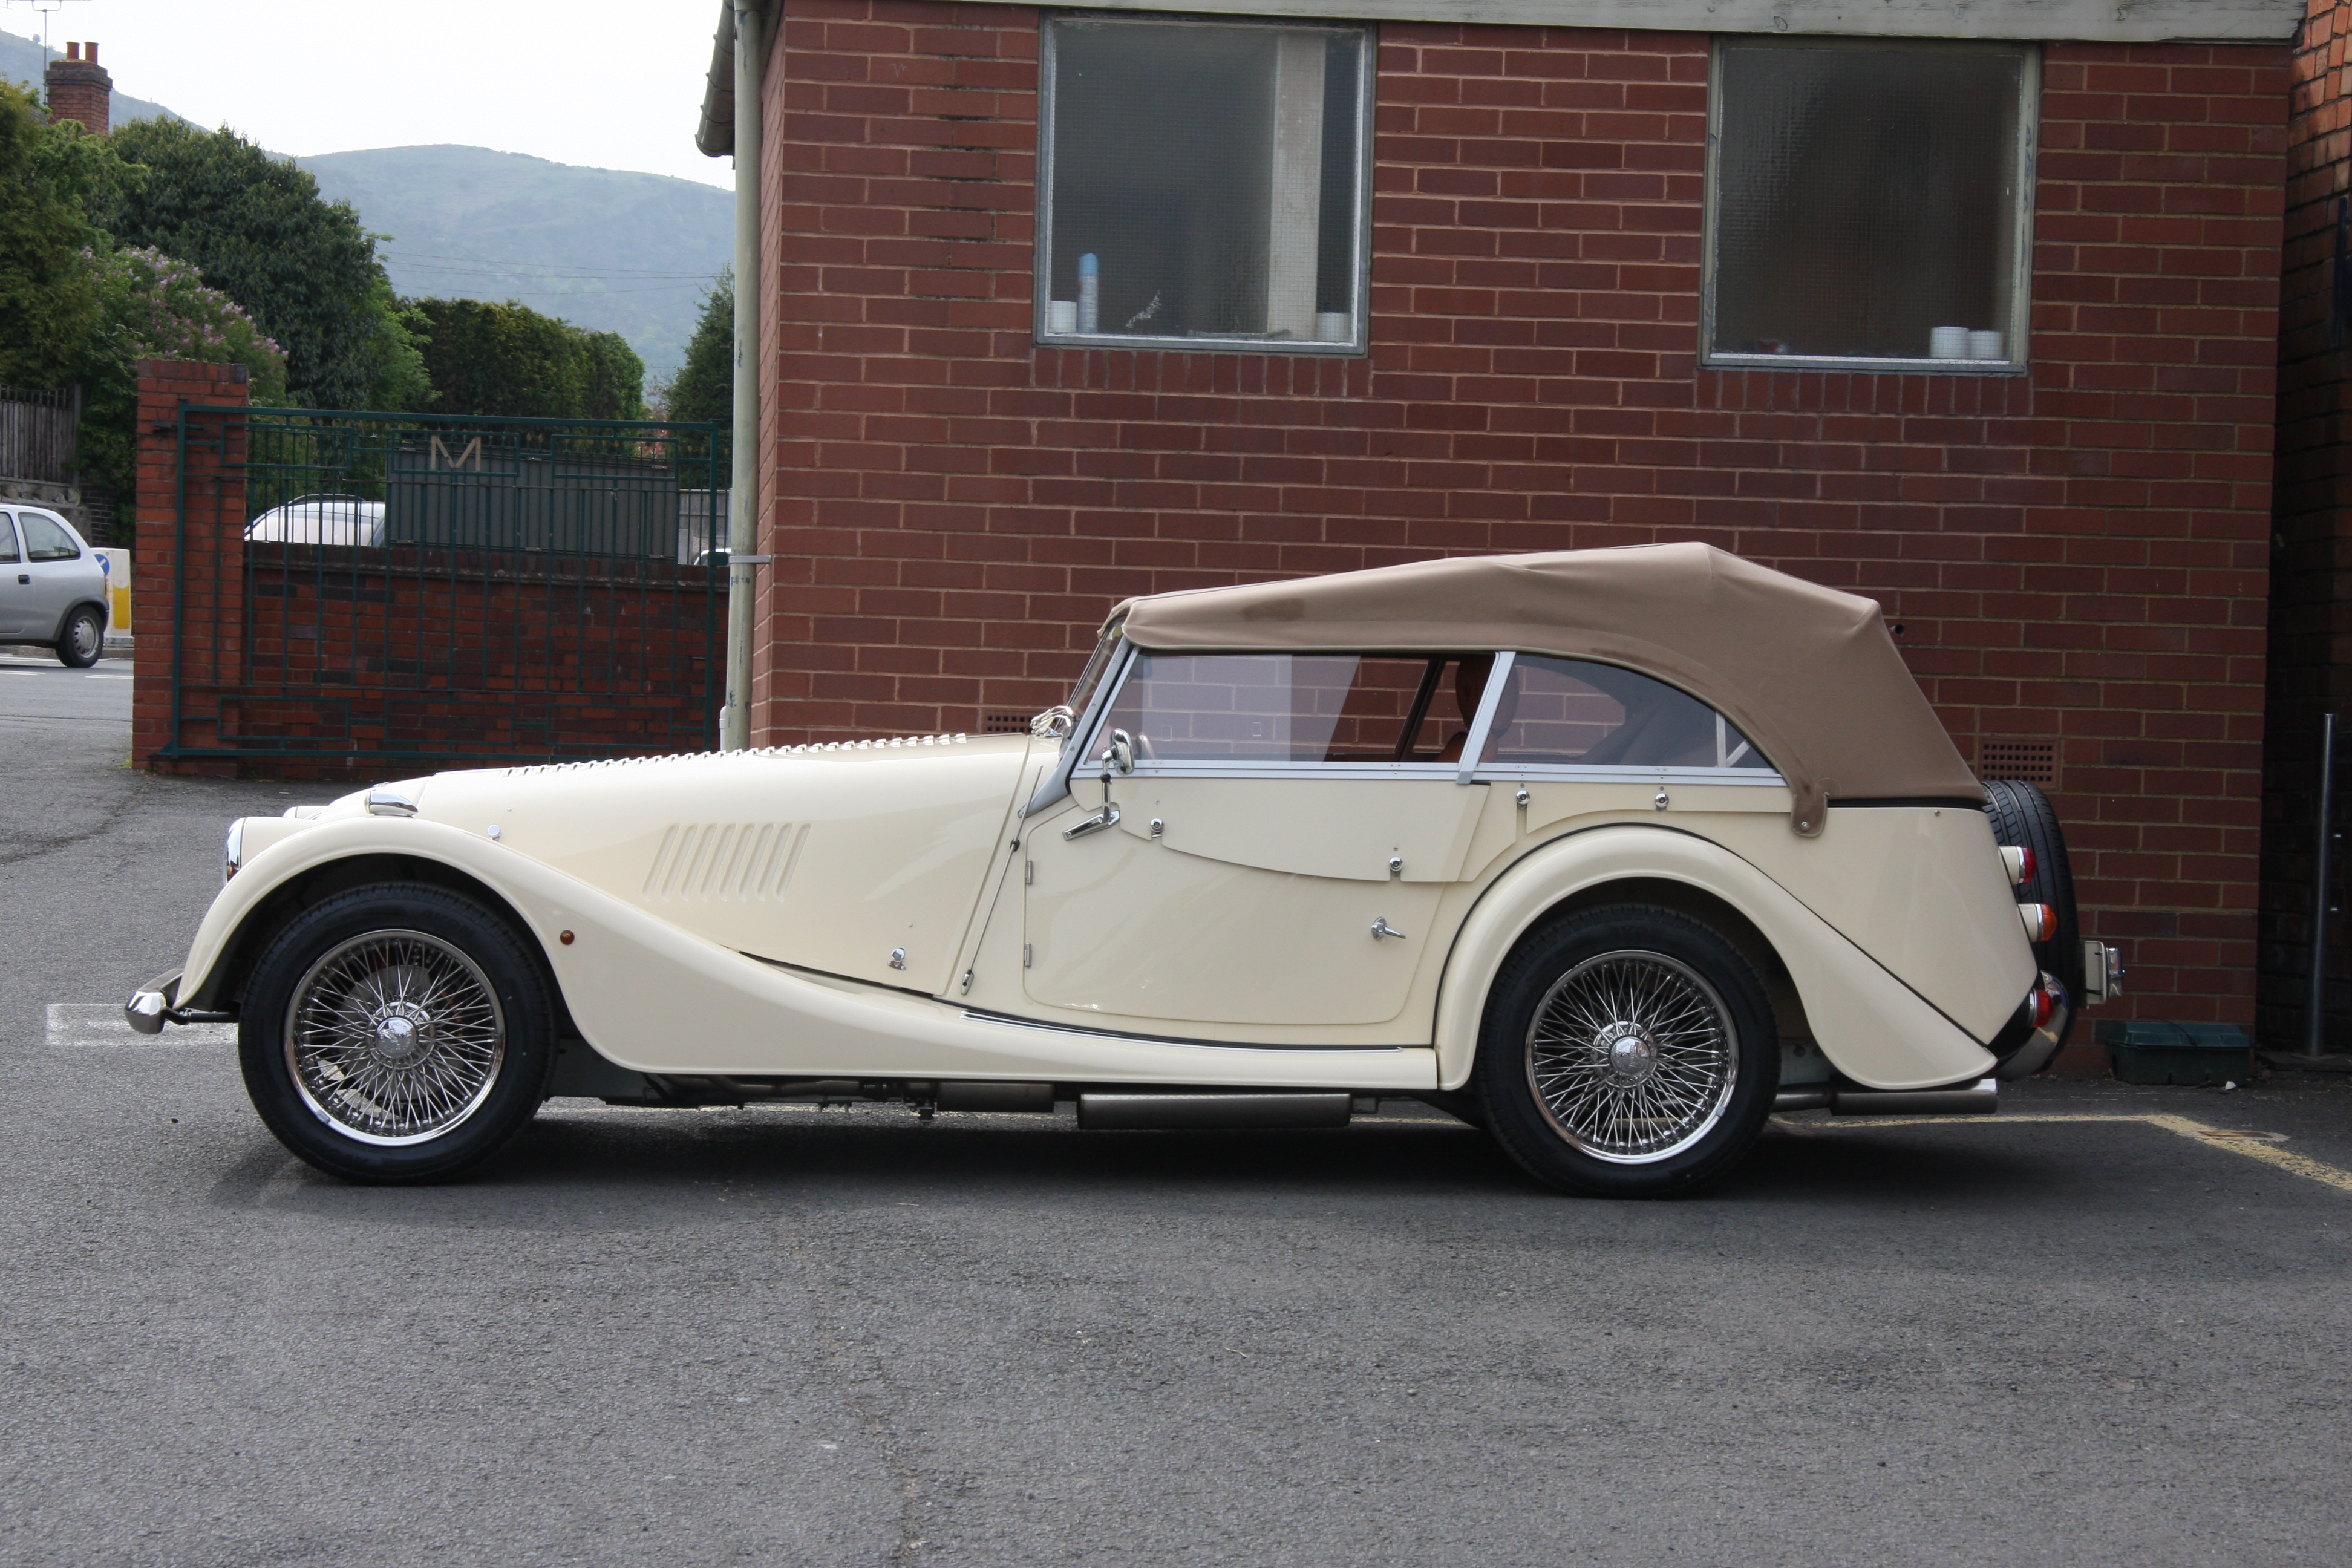 Morgan 4-seater photo - 6